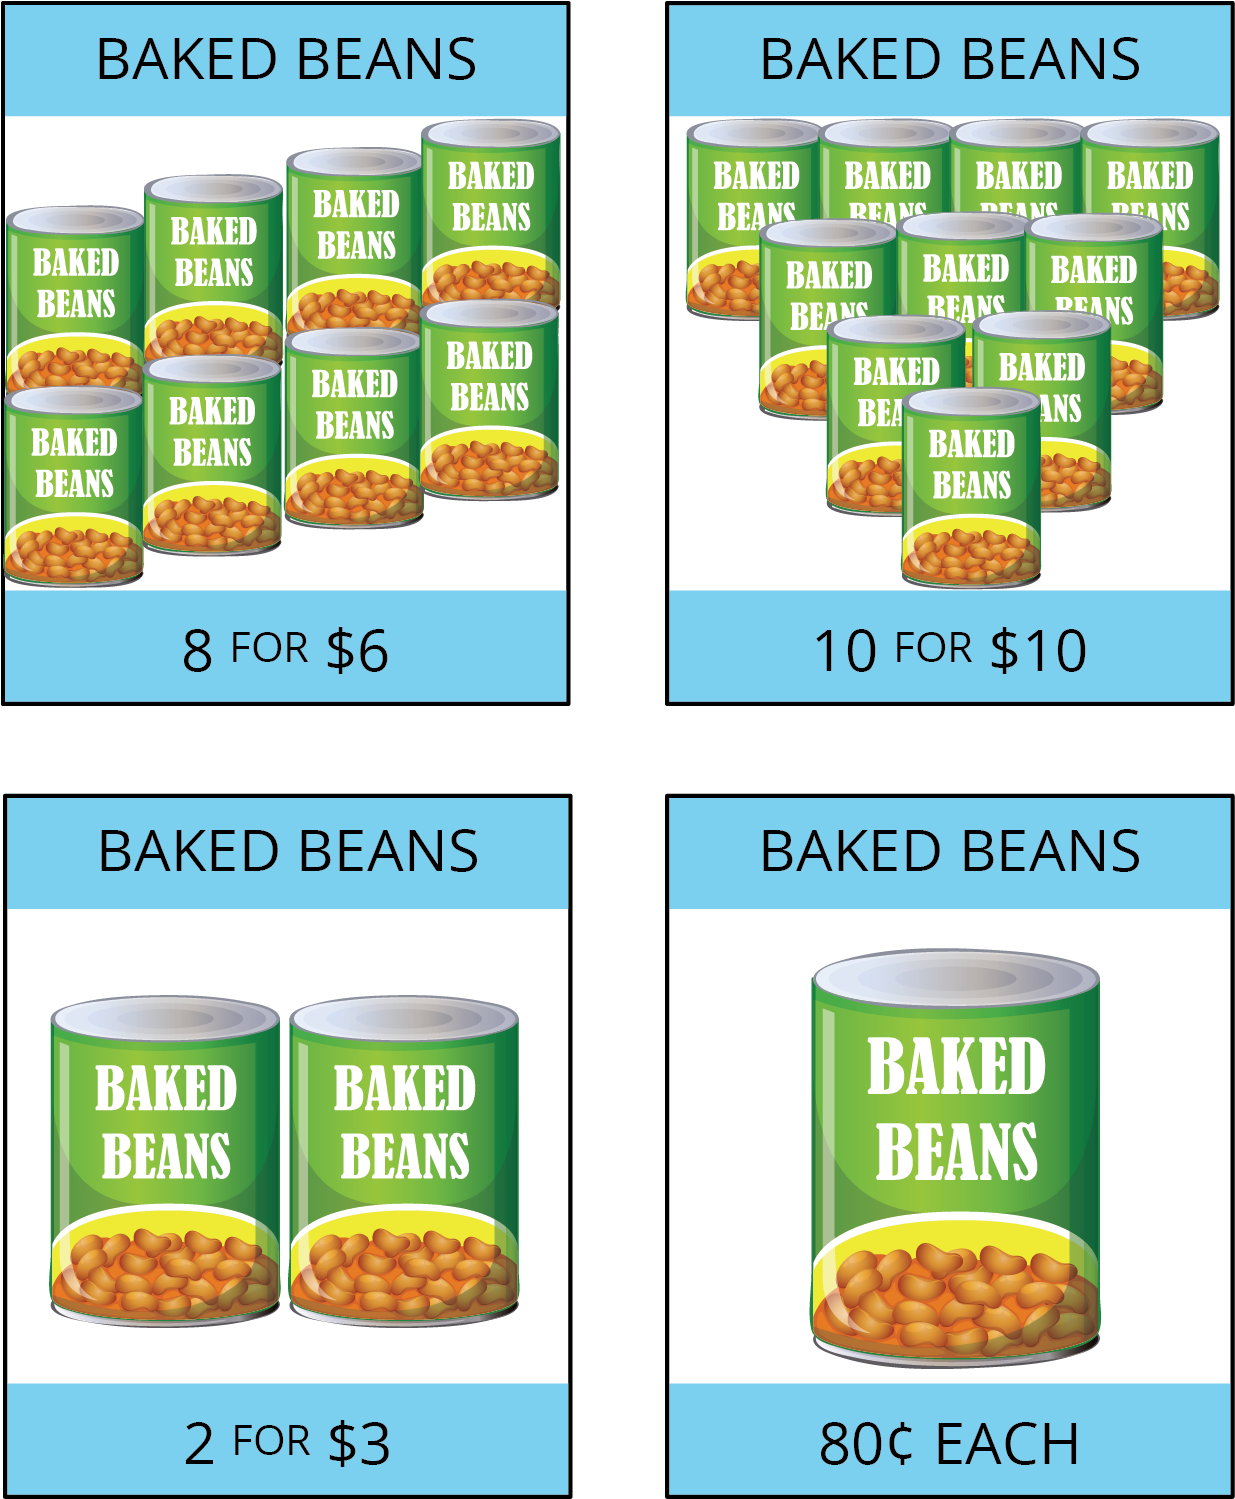 Four different images of ads for baked beans. The first ad has 8 cans of beans and is labeled 8 for 6 dollars. The second ad shows 10 cans of beans and is labeled 10 for 10 dollars. The third ad shows 2 cans of beans and is labeled 2 for 3 dollars. The fourth ad shows 1 can of beans and is labeled 80 cents each.